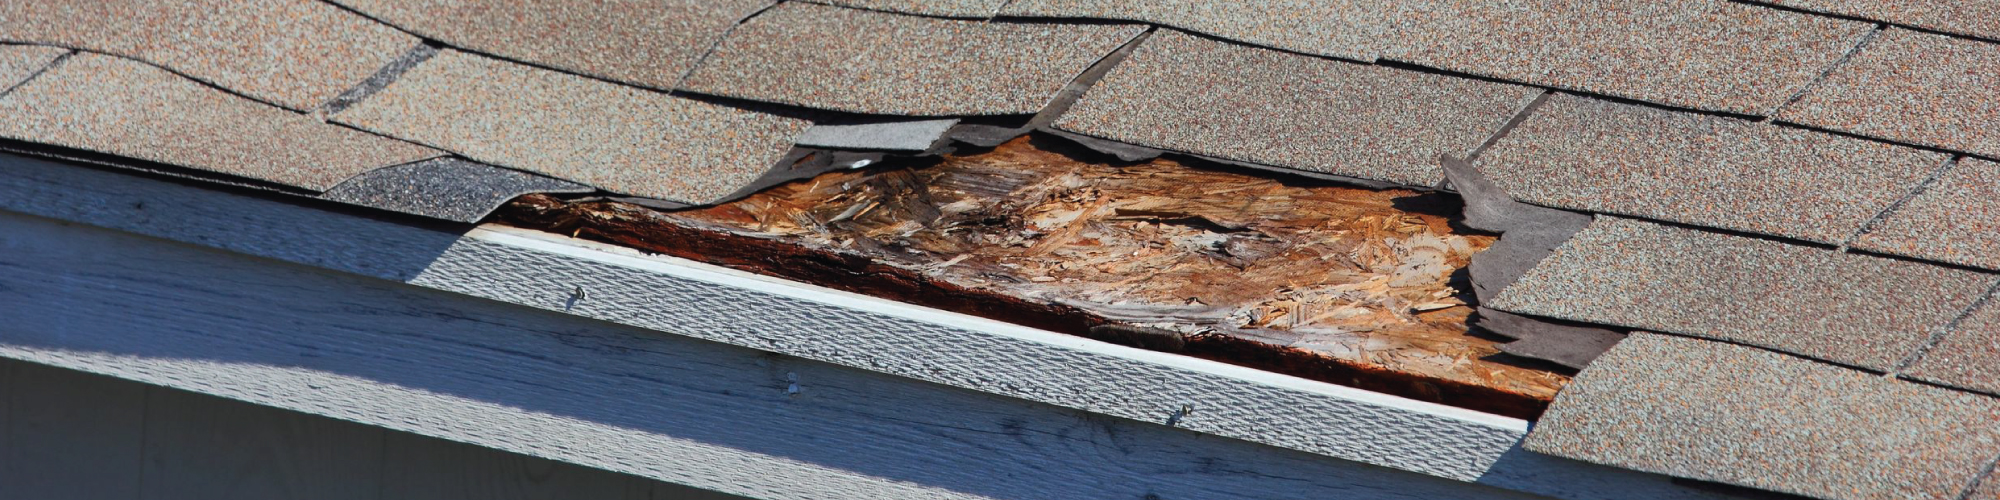 How Much Do Roofers Charge Per Square 1 Oak Roofing